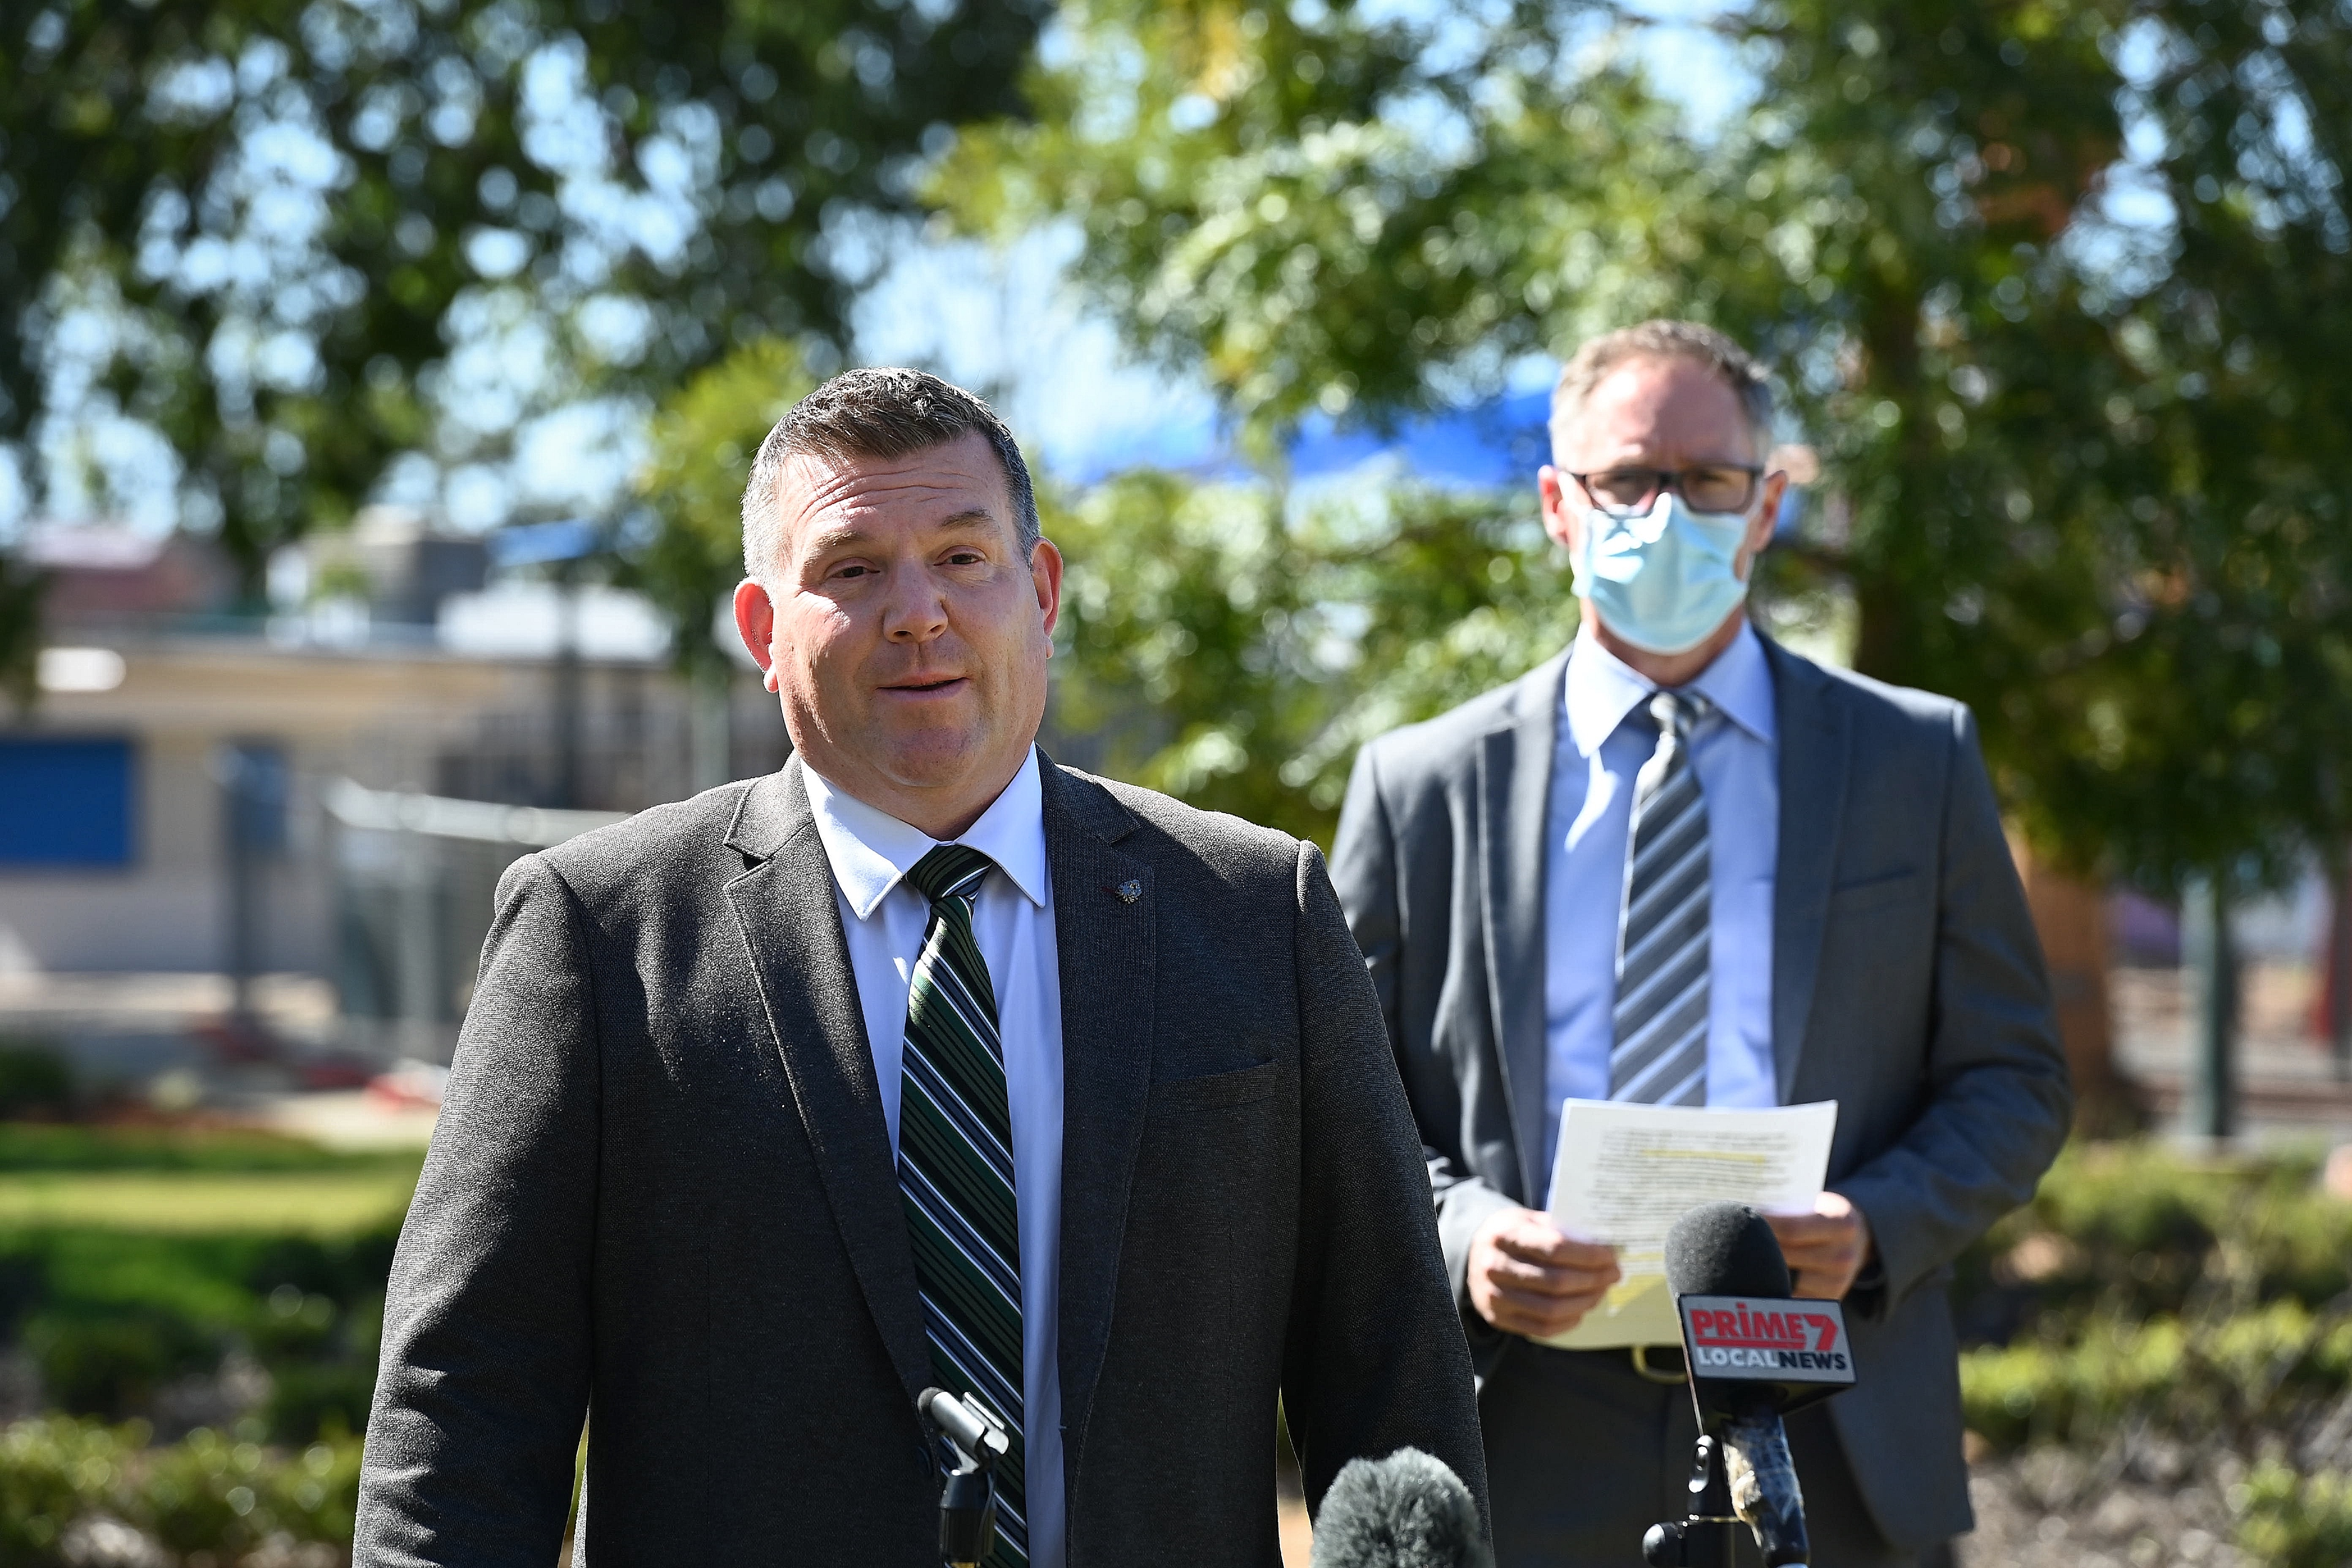 Dubbo NSW MP Dougald Saunders (left) and CEO of Western NSW Local Health District Scott McLauchlan (right) during a local COVID-19 update in Victoria Park, Dubbo, NSW. (Photo: Kate Geraghty)